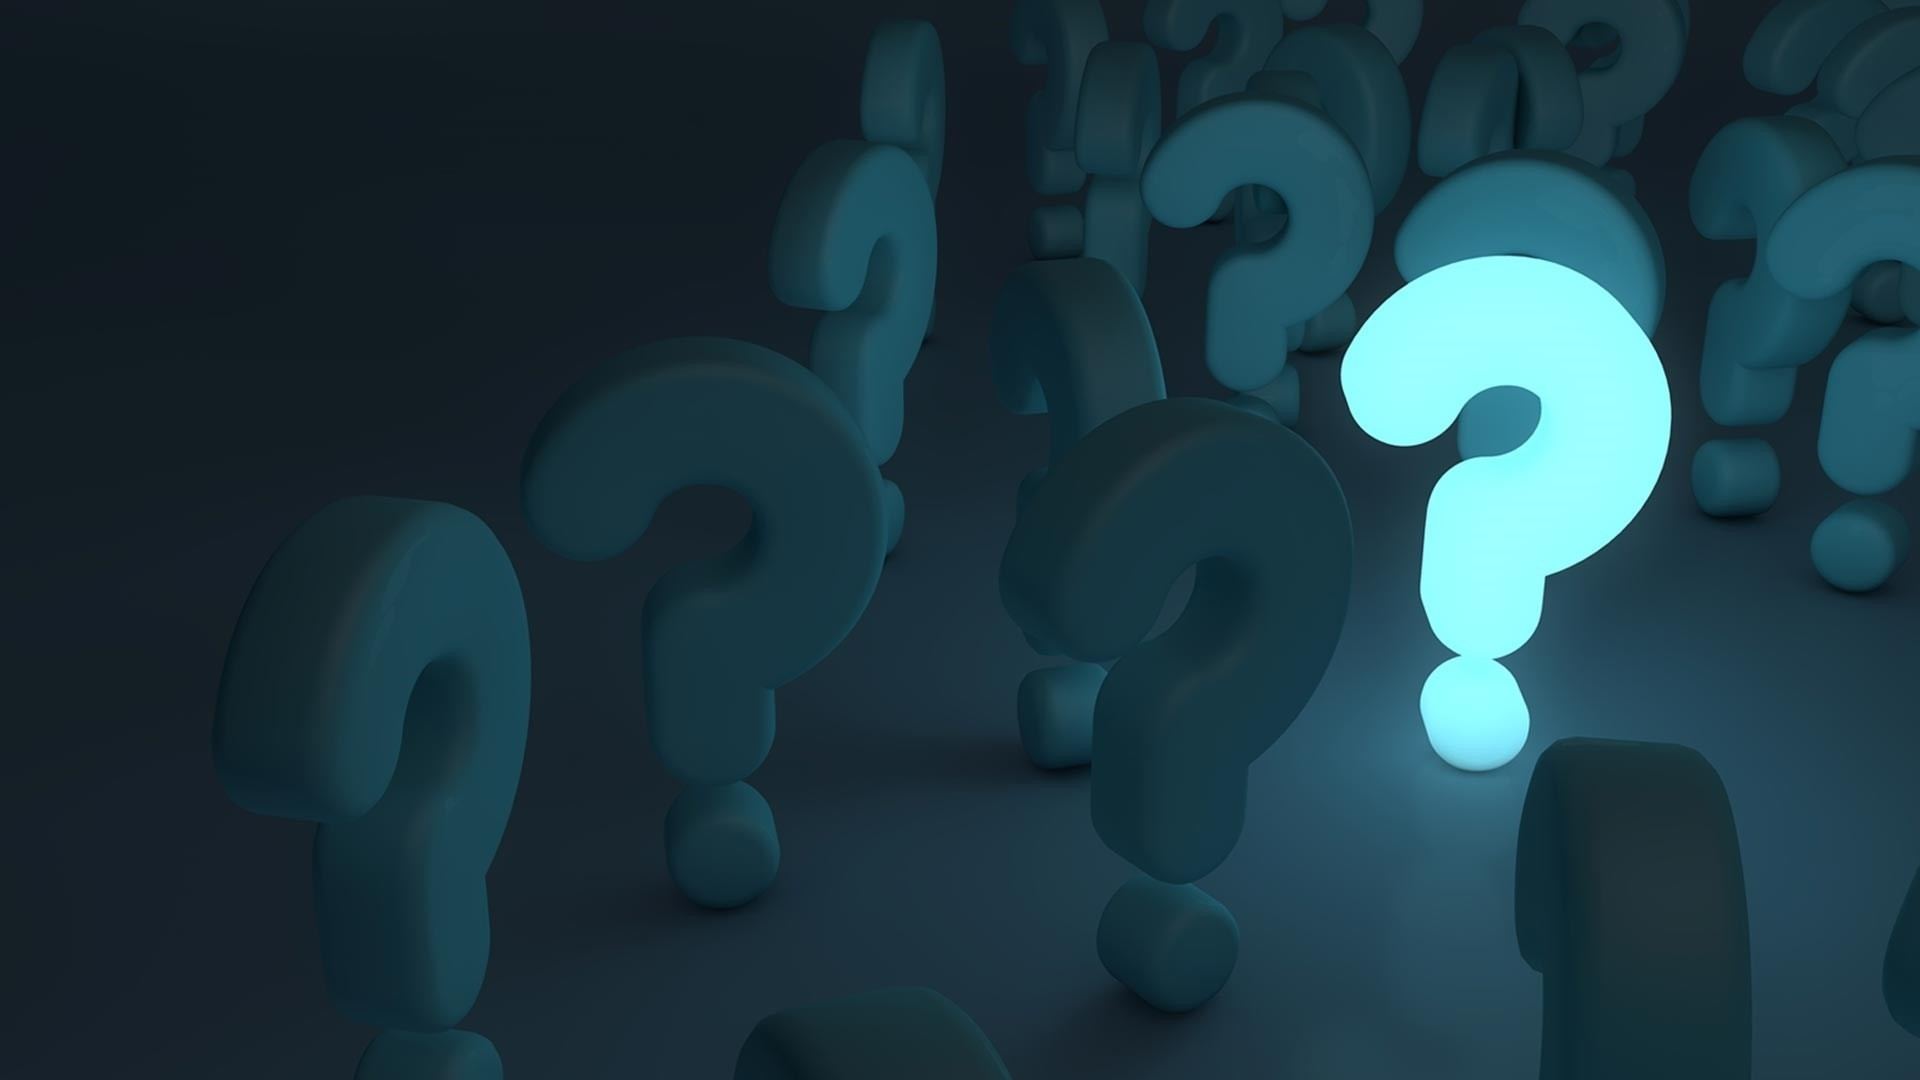 Question Mark Wallpaper image hd